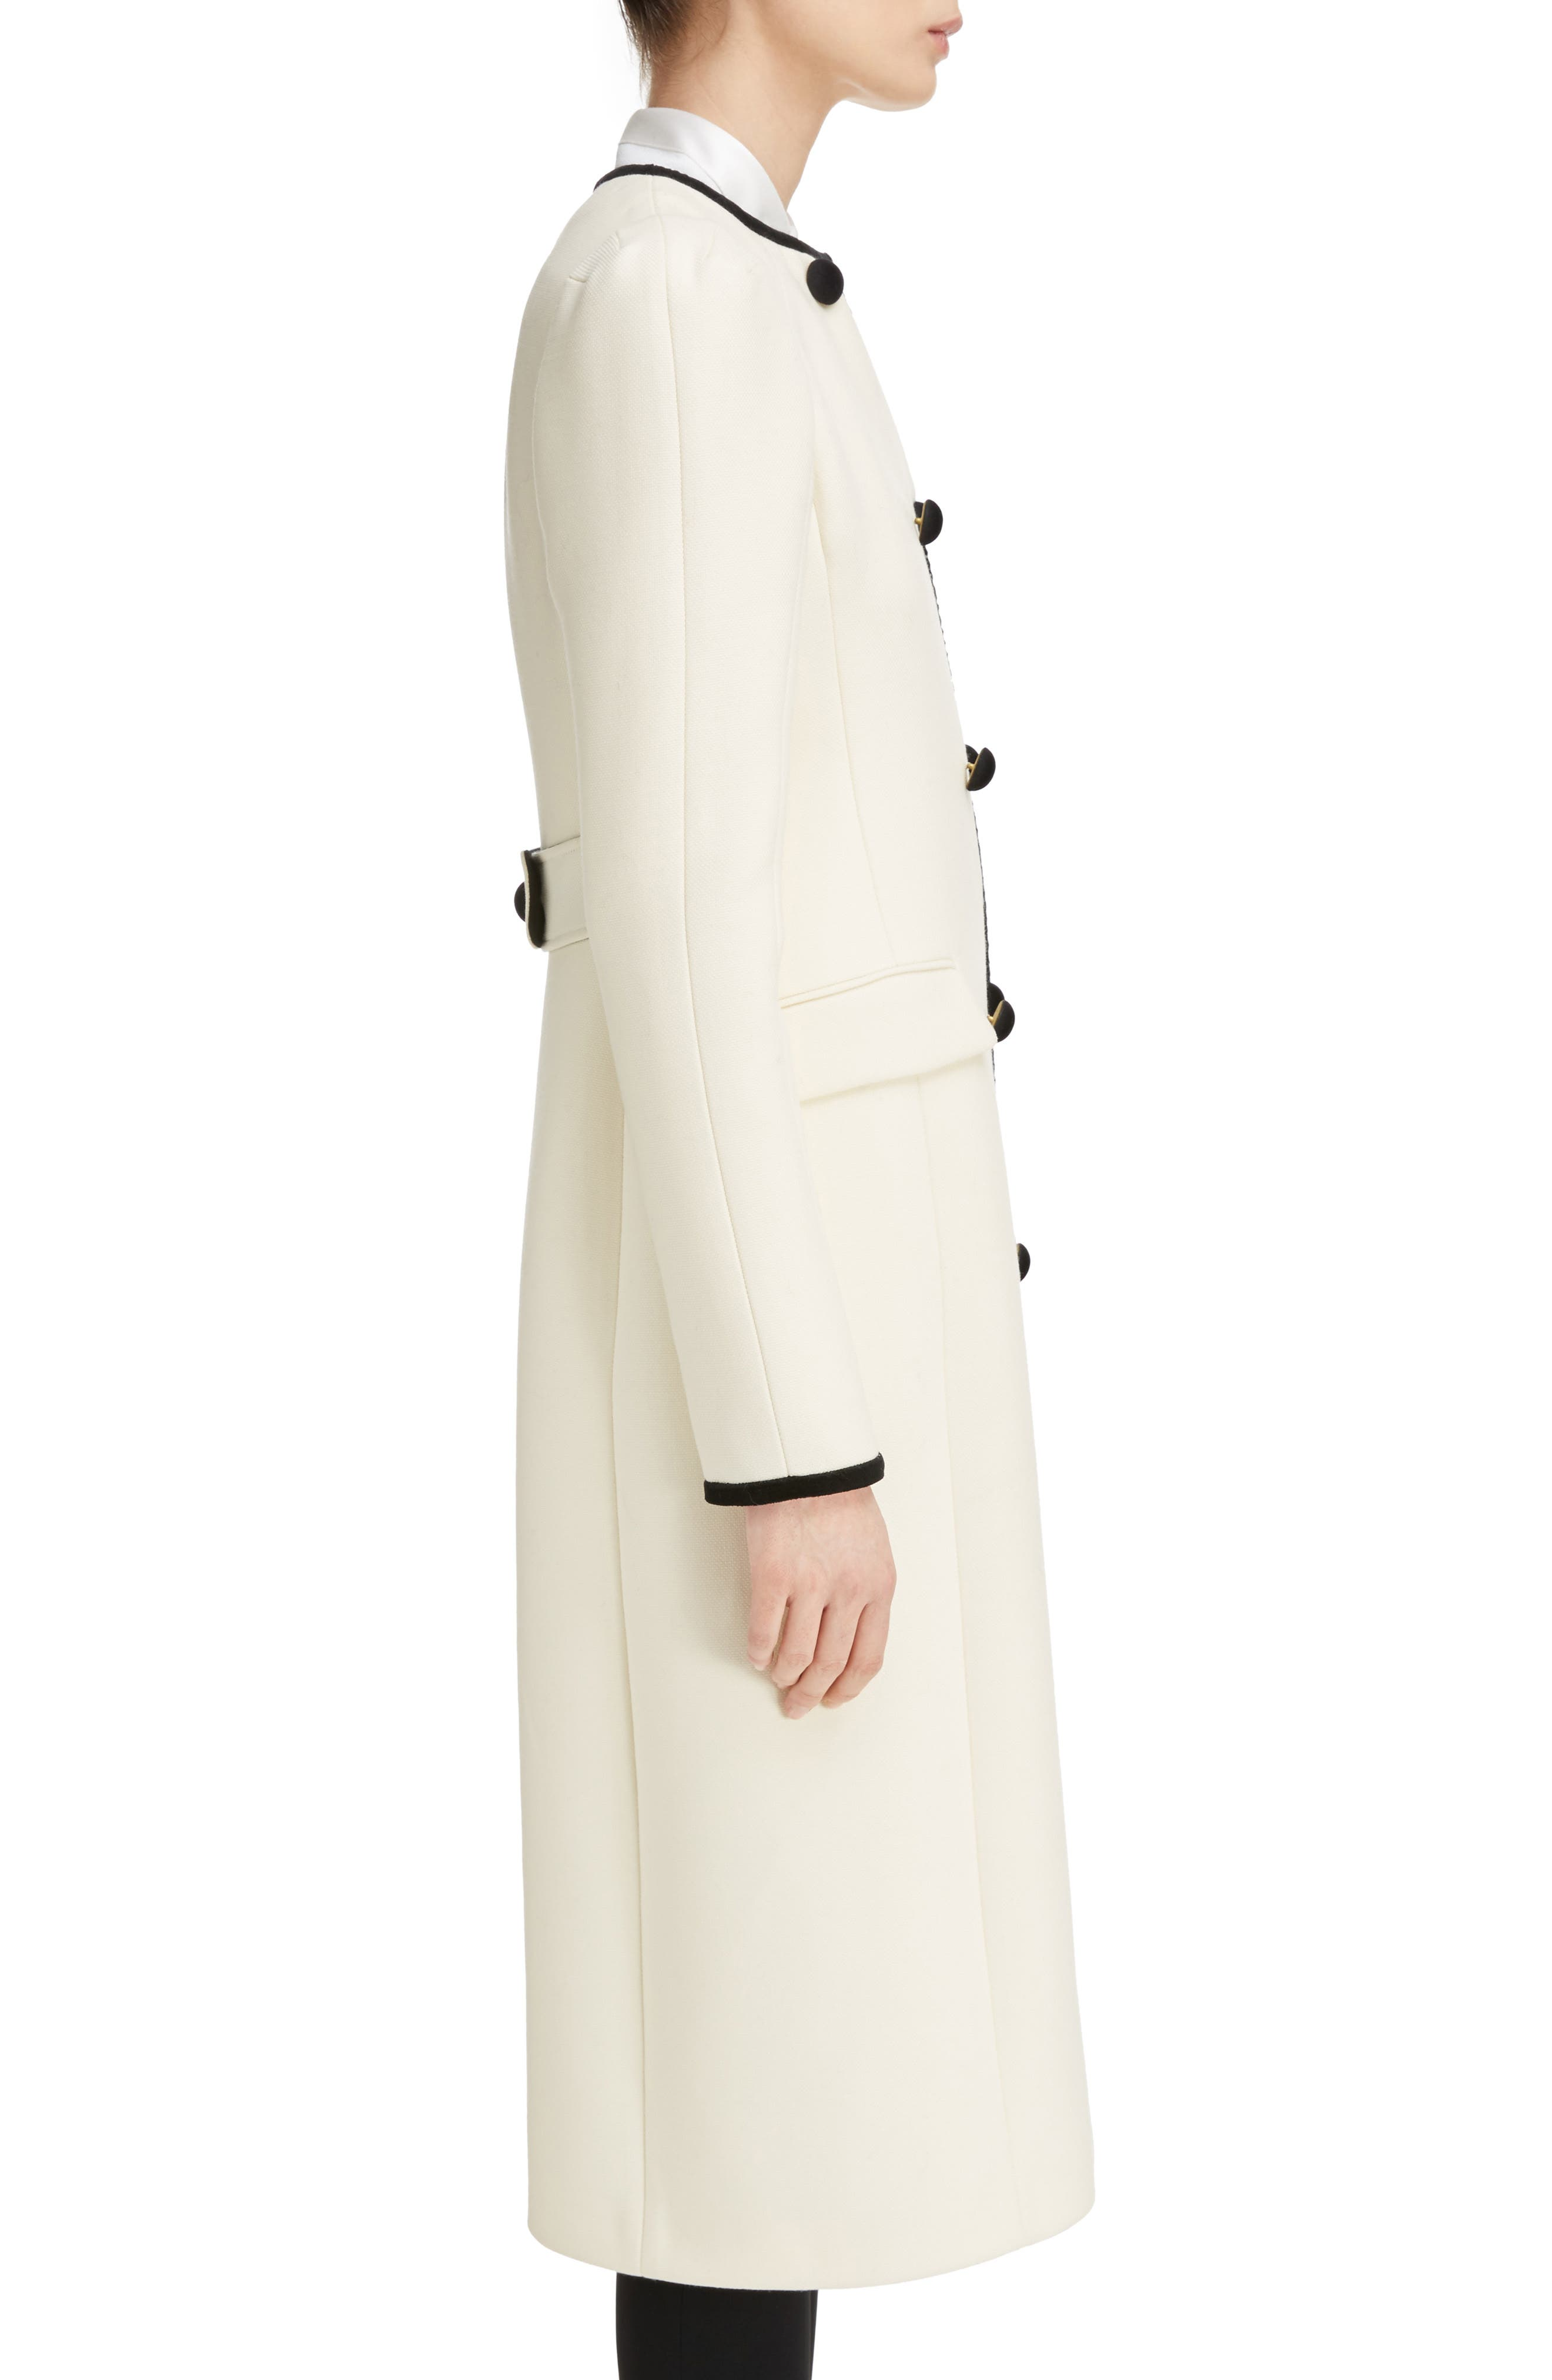 Bellasio Double Breasted Wool Coat,                             Alternate thumbnail 3, color,